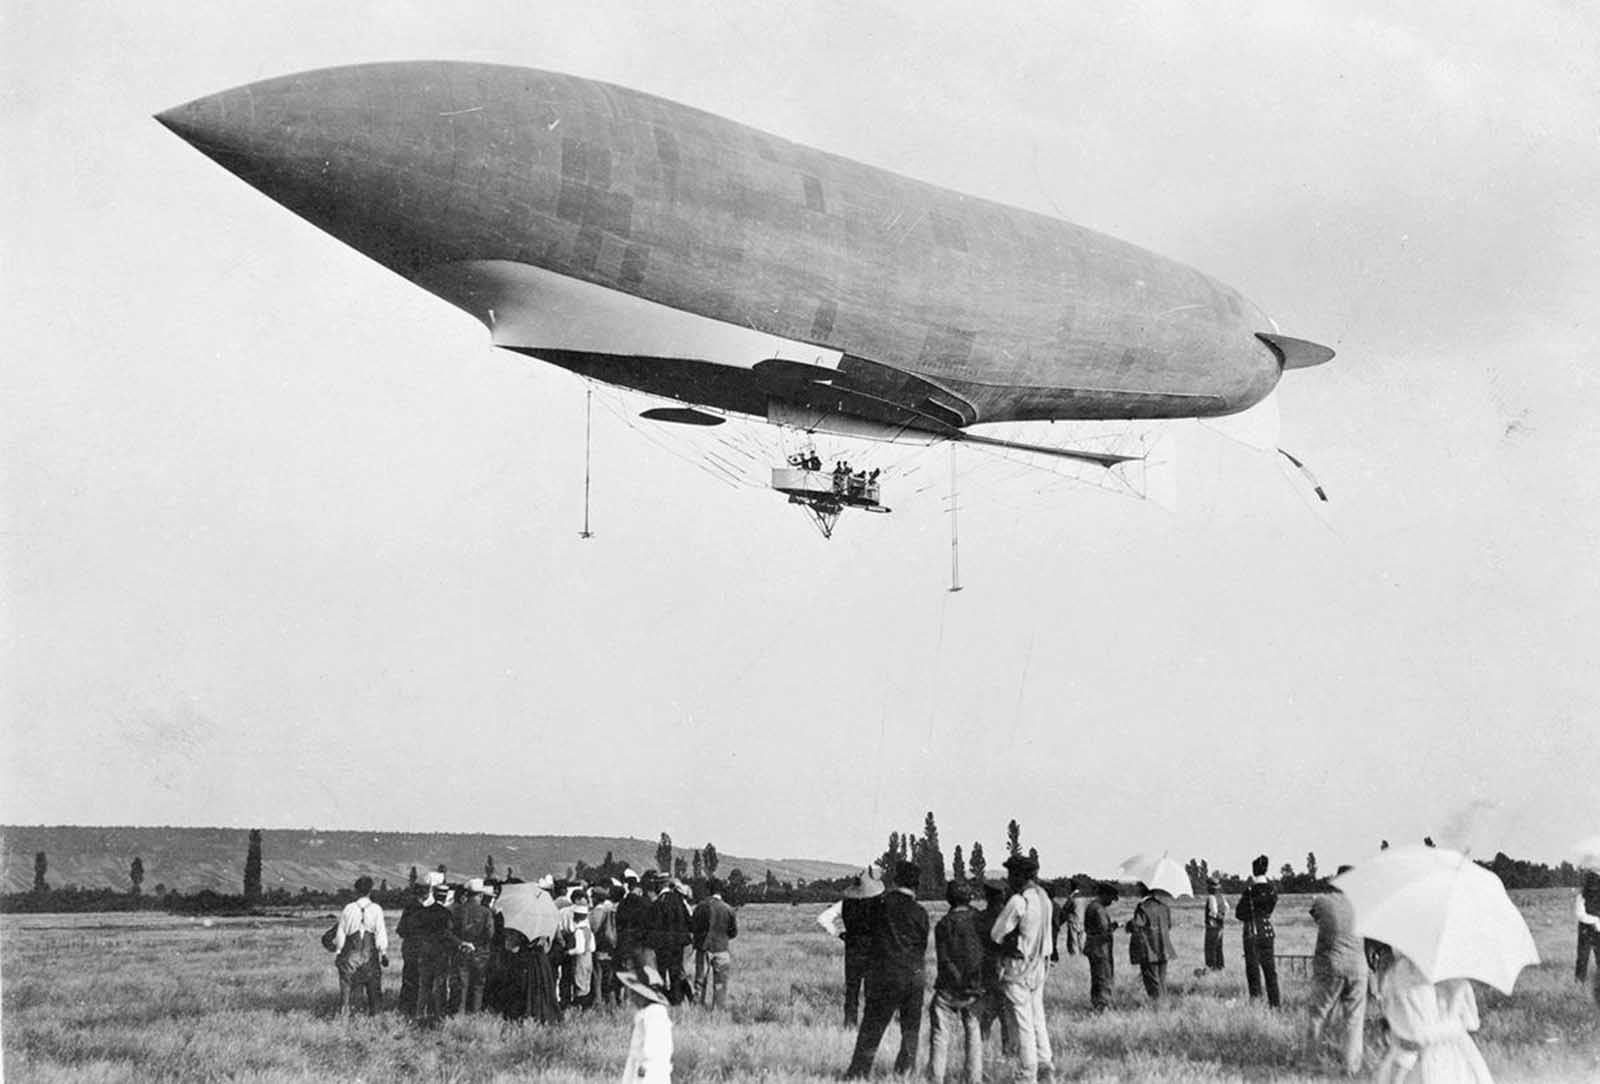 French military dirigible